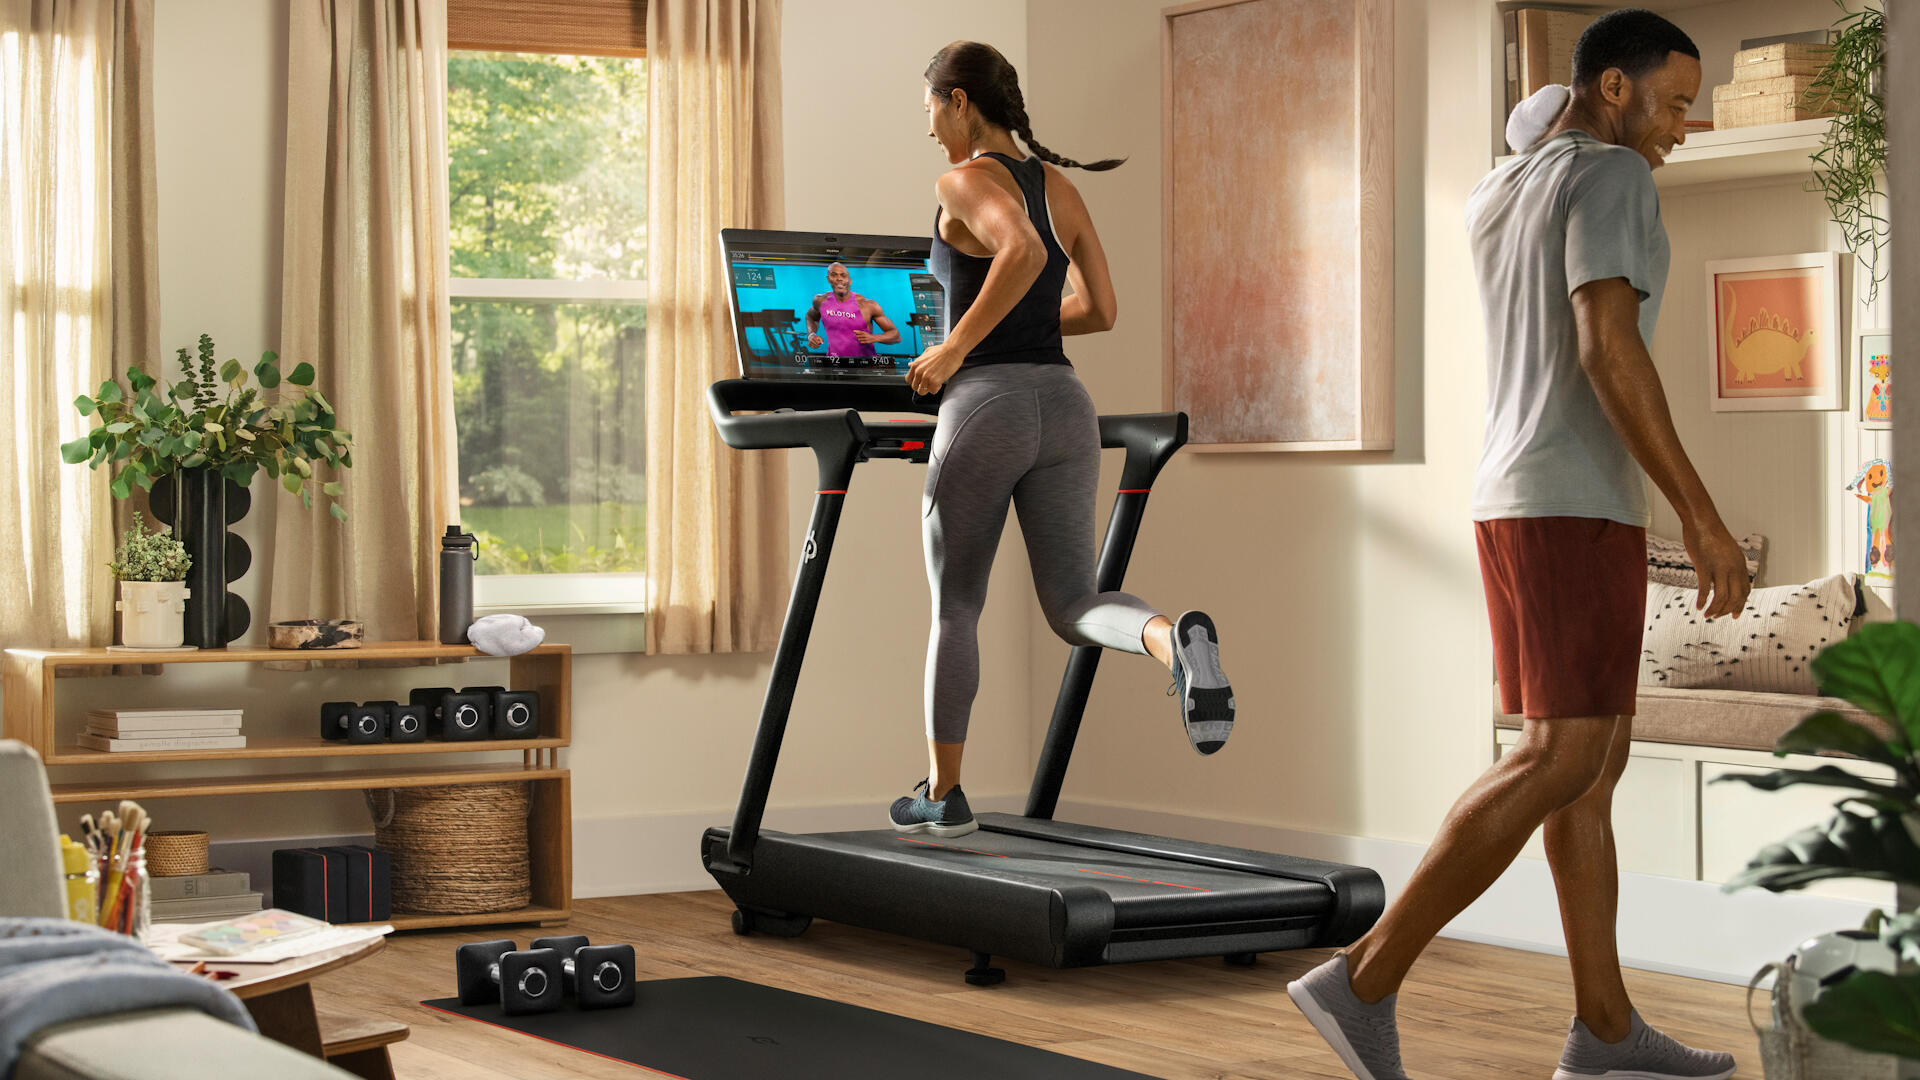 Video: Peloton recalls treadmills, Signal and Facebook clash